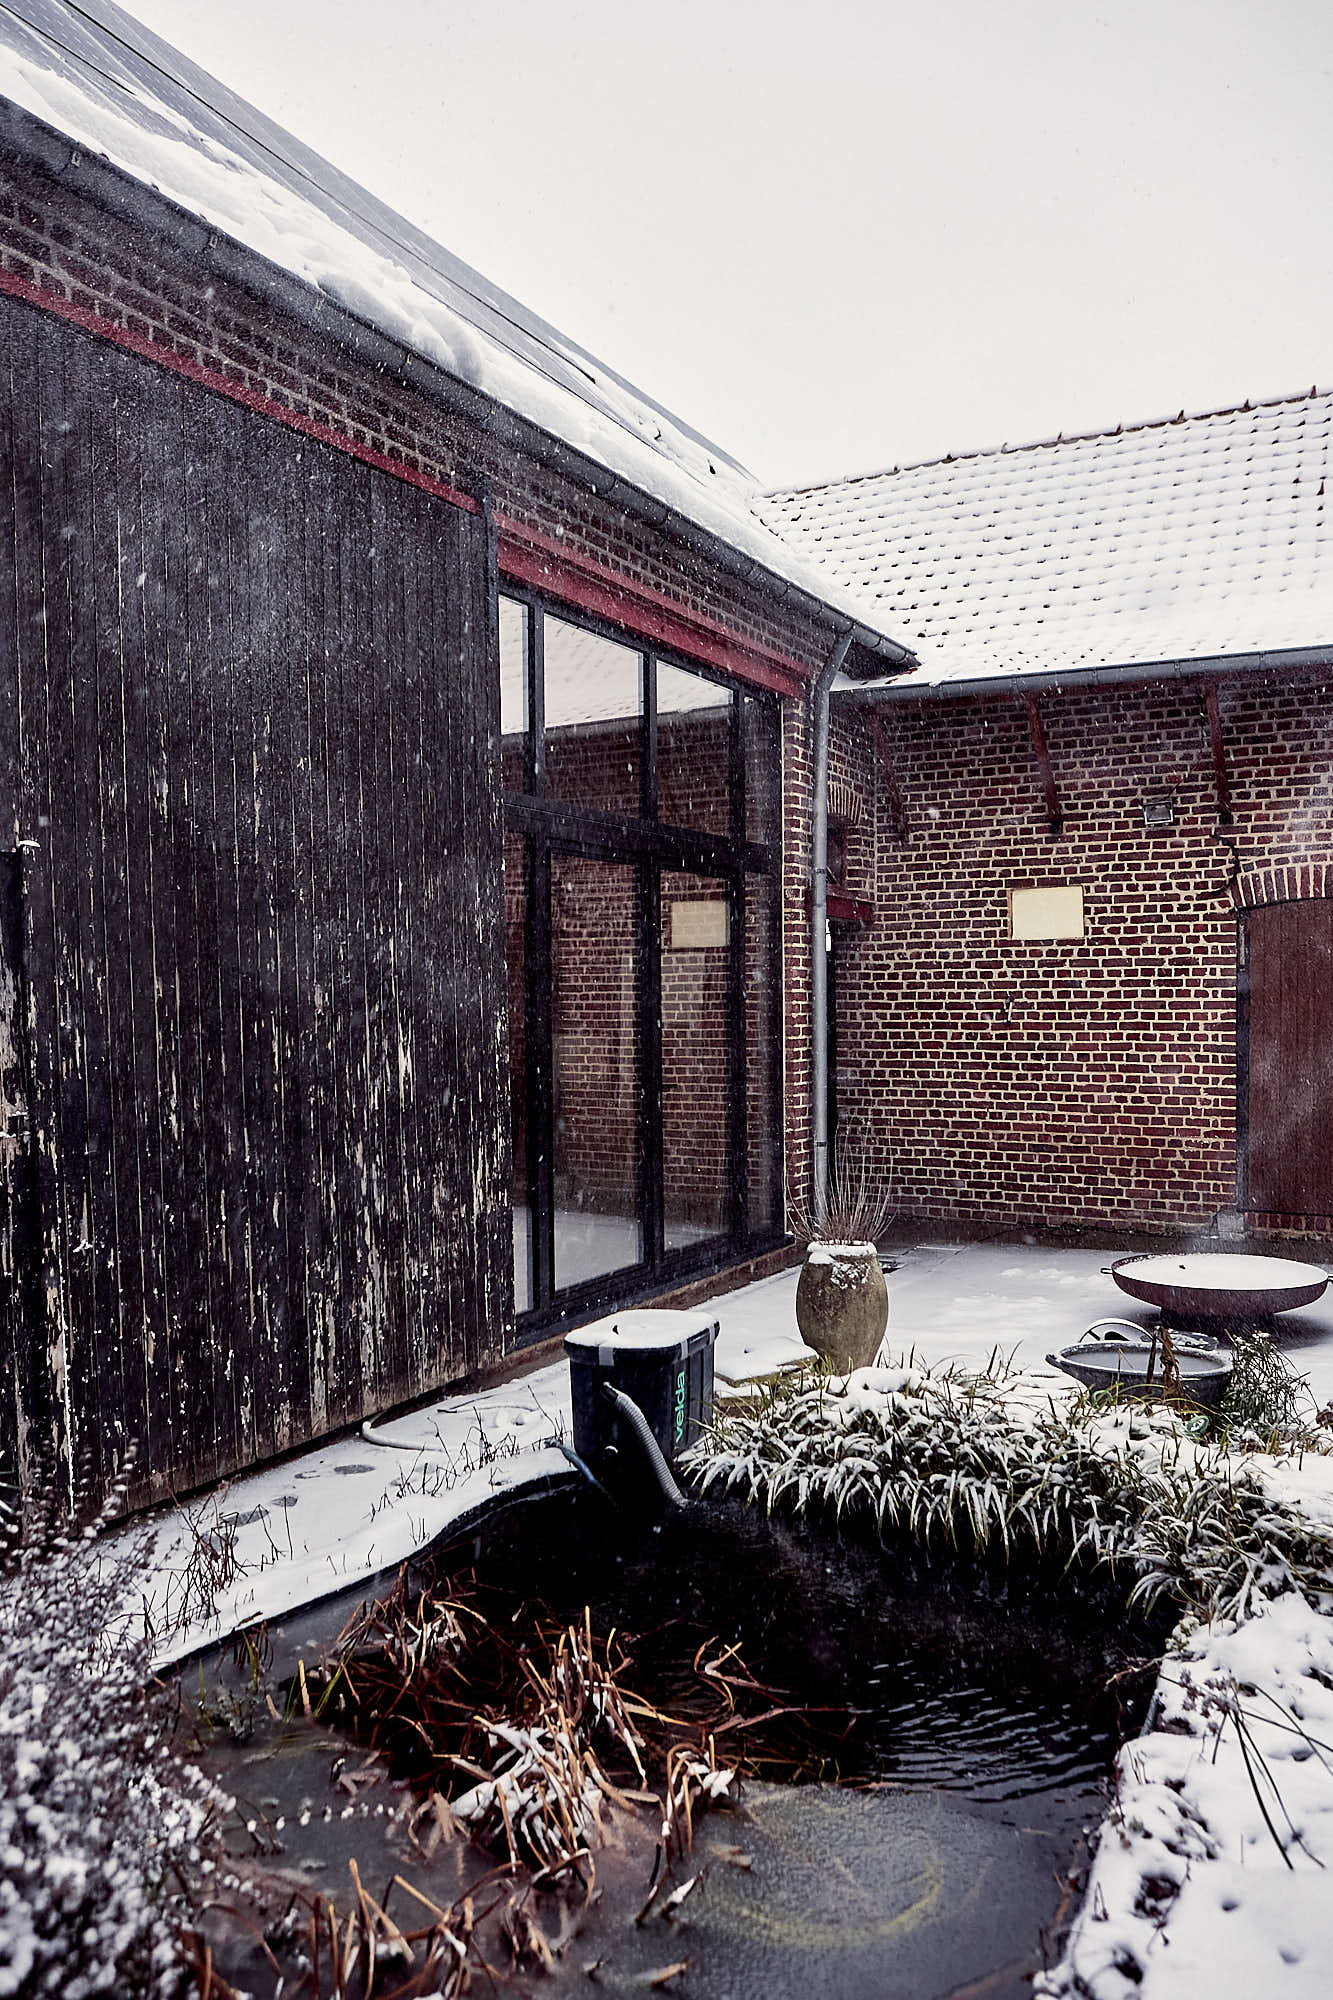 courtyard and pond with a farm surrounding it in the snow